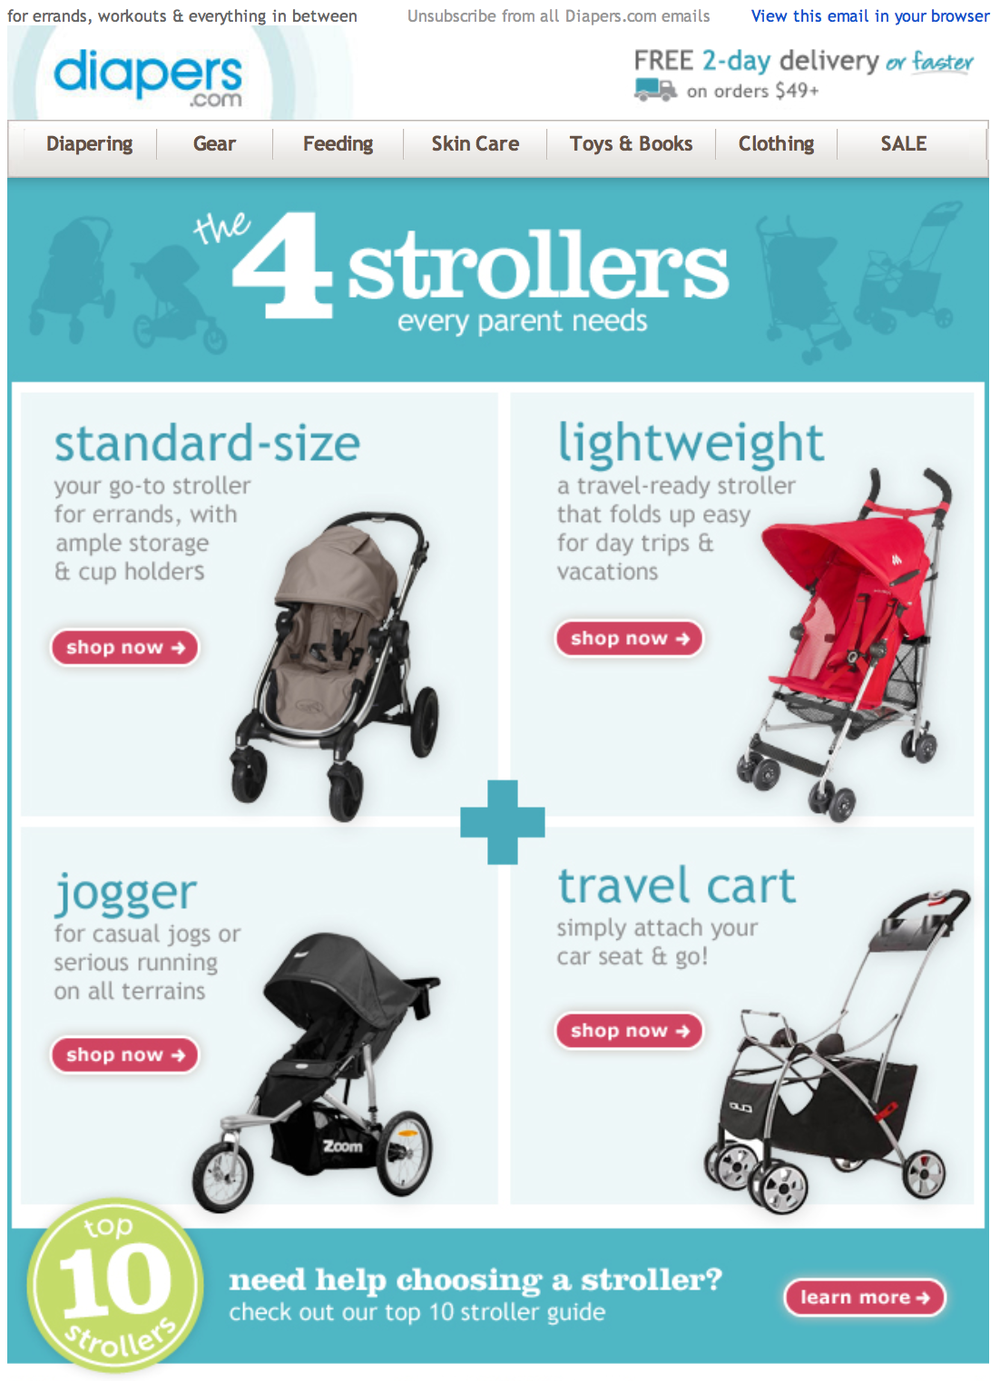 Email: 4 Strollers Every Parent Needs